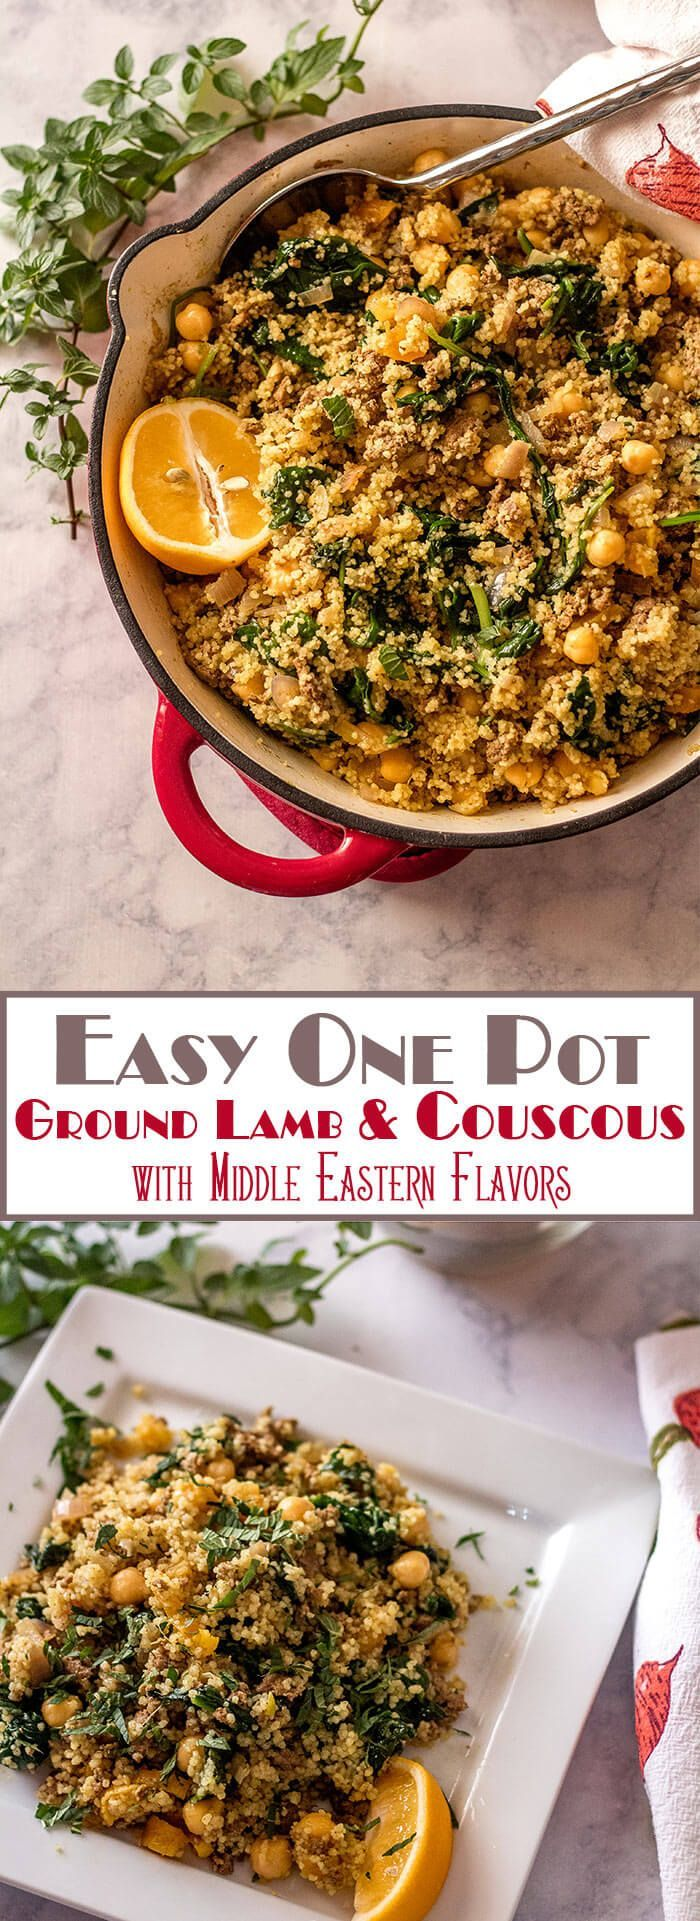 Fragrant Easy One Pot Ground Lamb and Couscous combines Middle Eastern spices with dried fruit, spinach, and chick peas in the ultimate quick and healthy one-pot meal! Middle Eastern | Lamb and Couscous | Minced Lamb | Easy One Pot Meals | Quick Dinners | Ground Lamb via @TamaraBMS